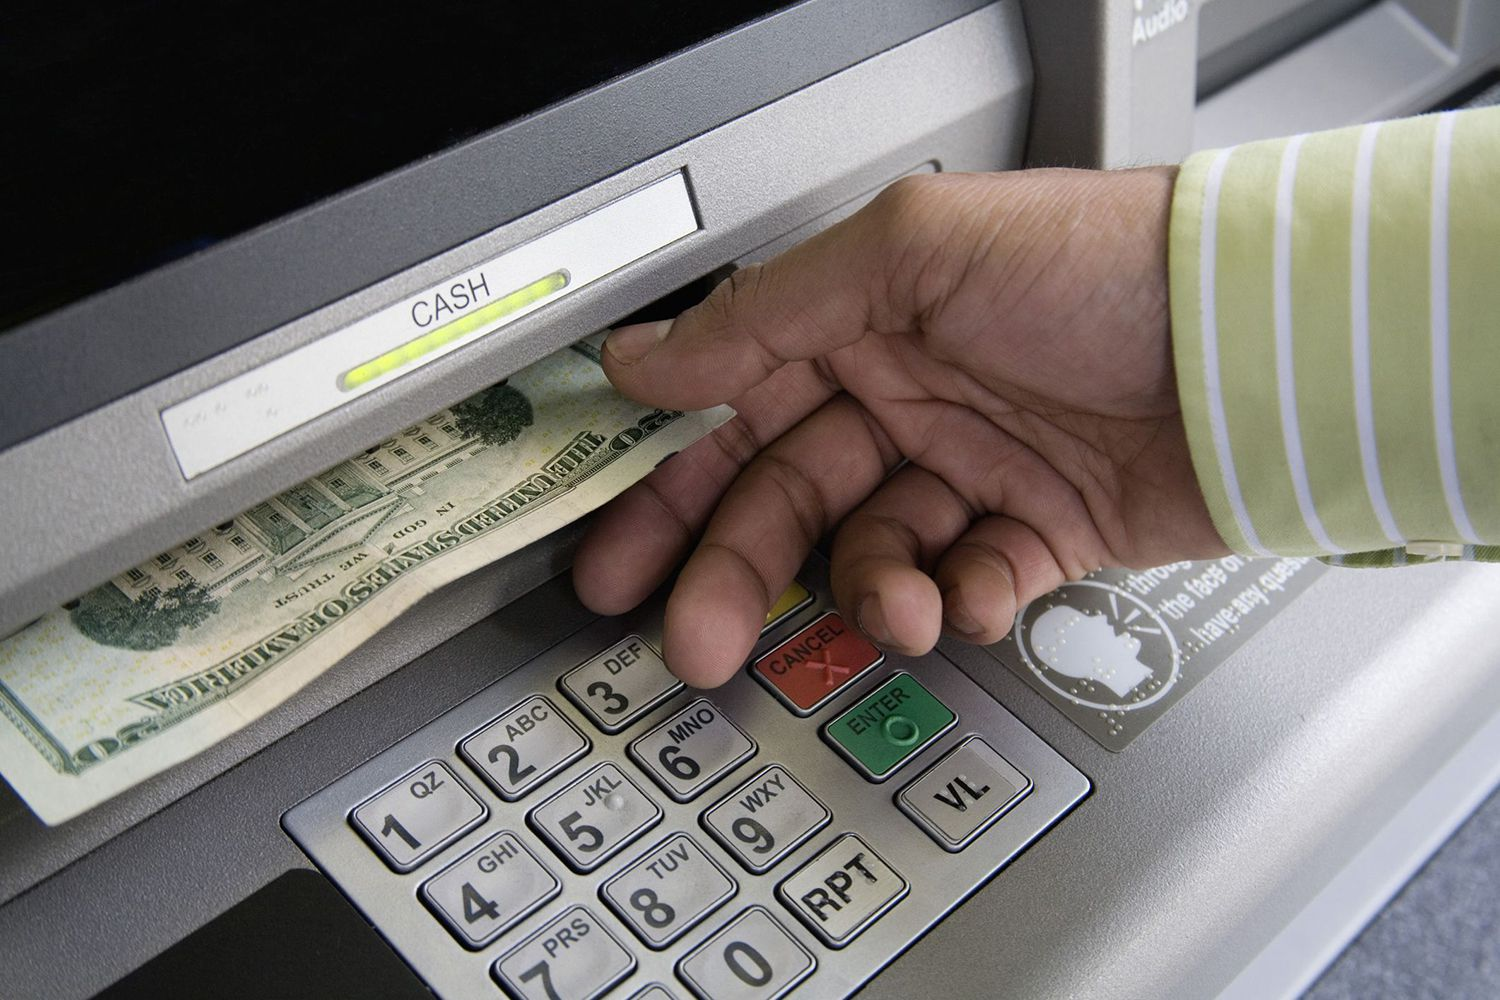 You can also use credit card cash advance.